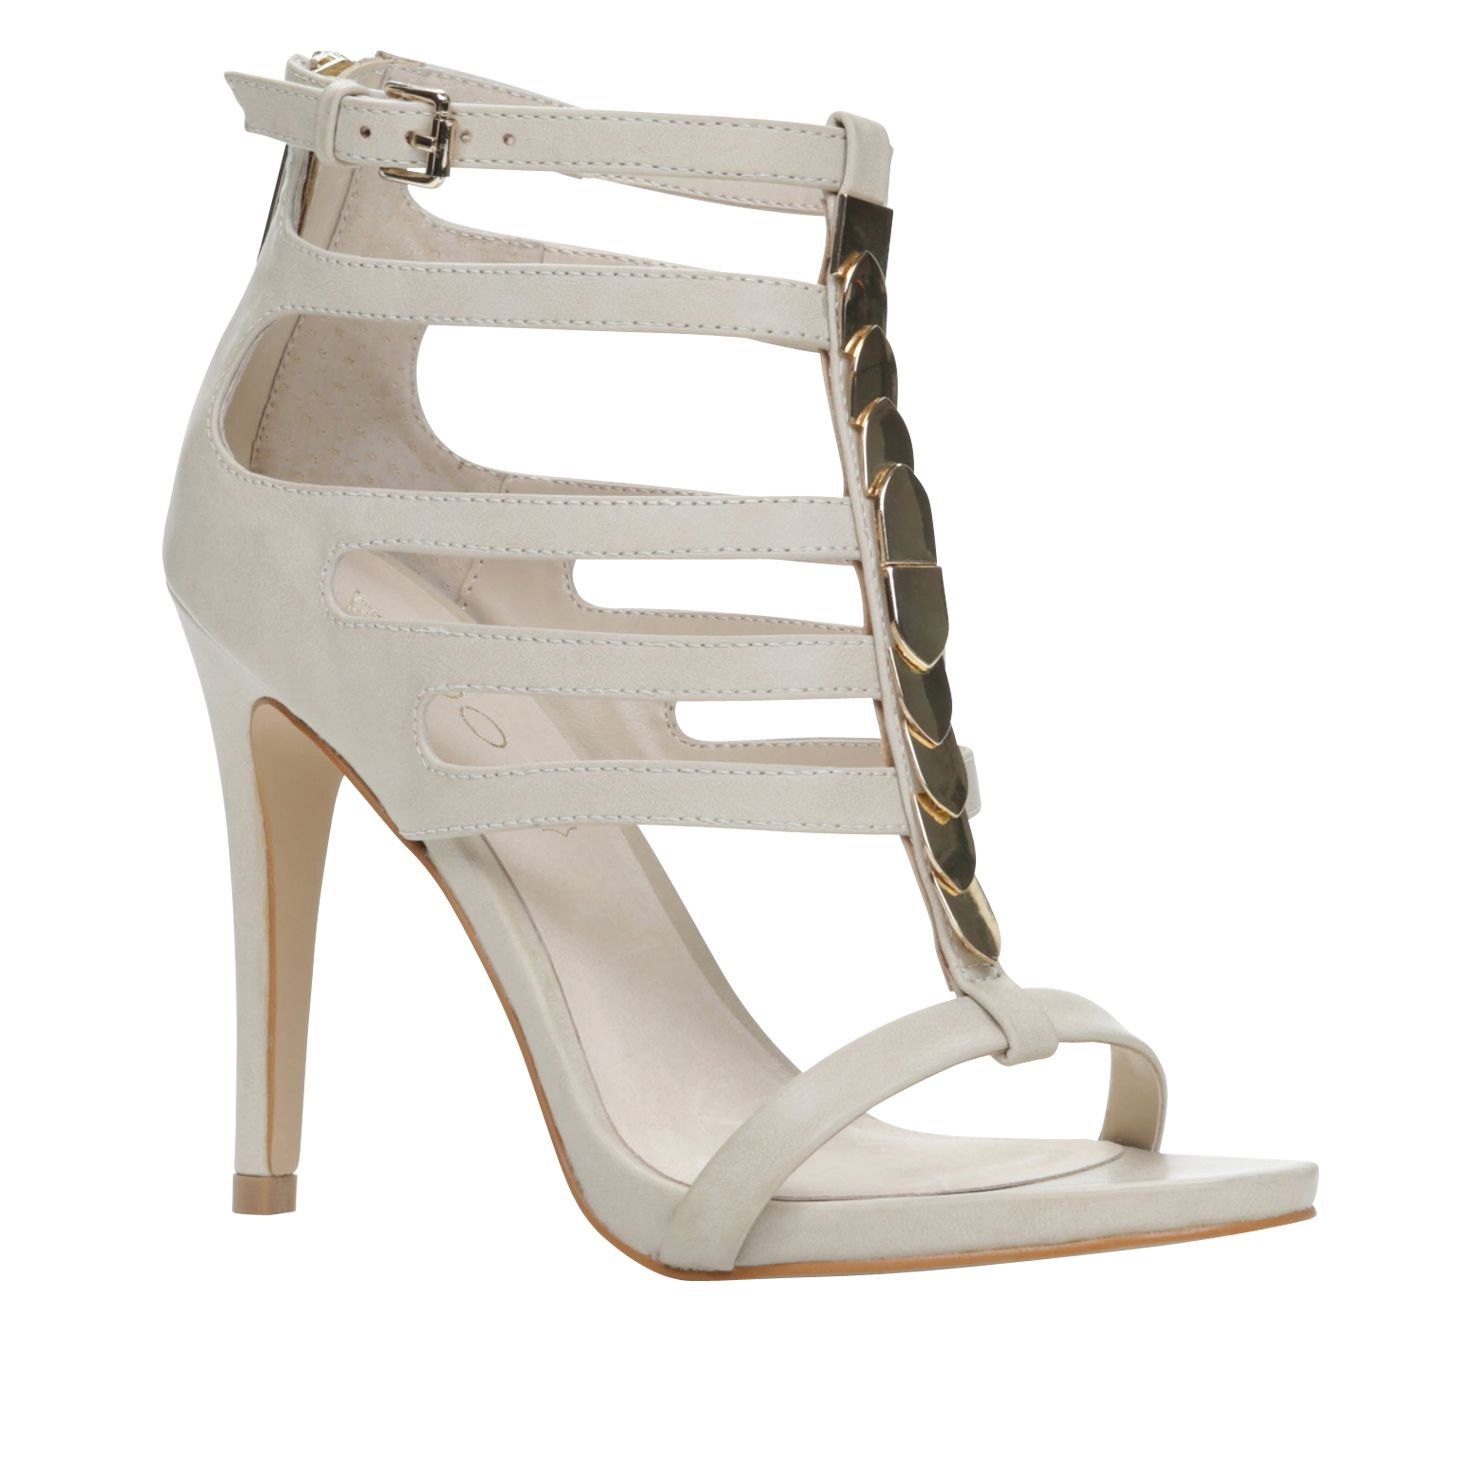 Radville strap high heel sandals